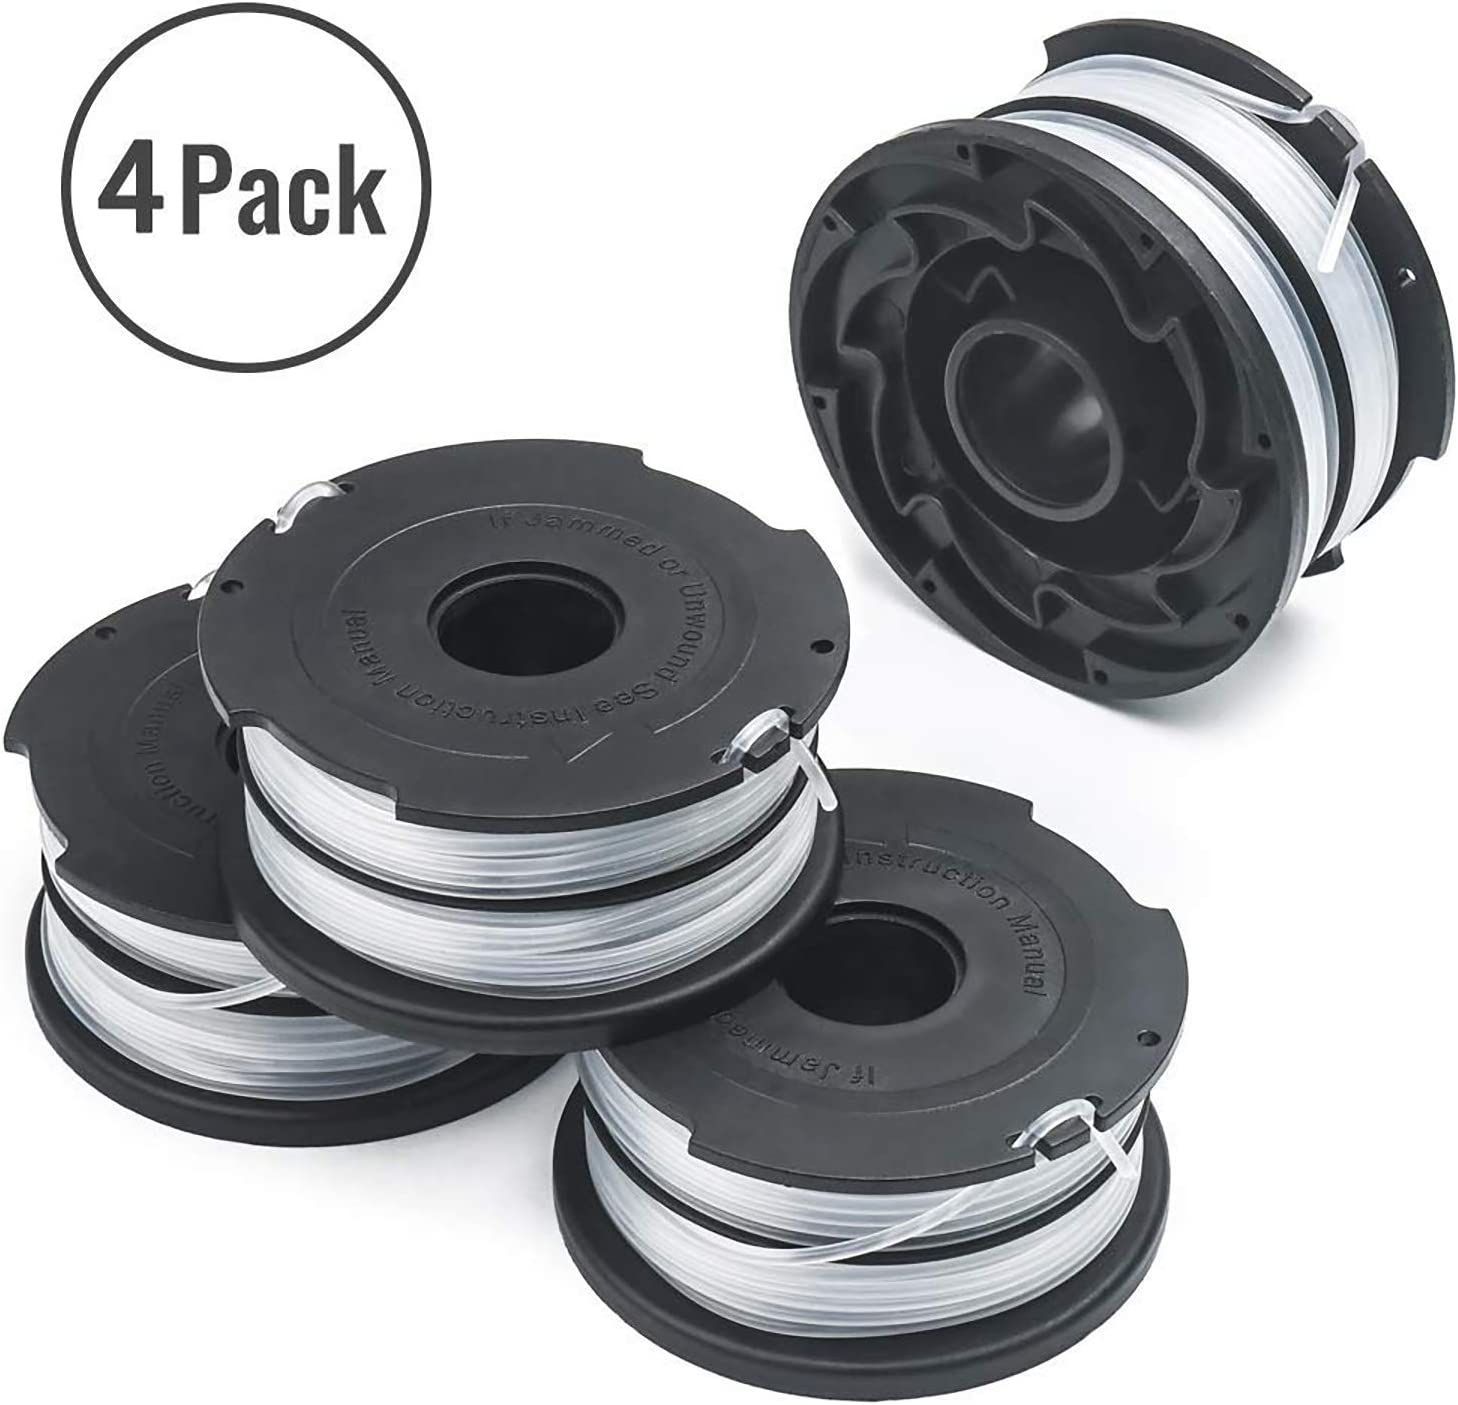 "Thten 90517175 Replacement String Trimmer Spools for Black Decker DF-065 GH710 GH700 GH750 Weed Eater Refills Line 36ft 0.065"" Auto-Feed Dual Line Edger Parts (4 Pack)"